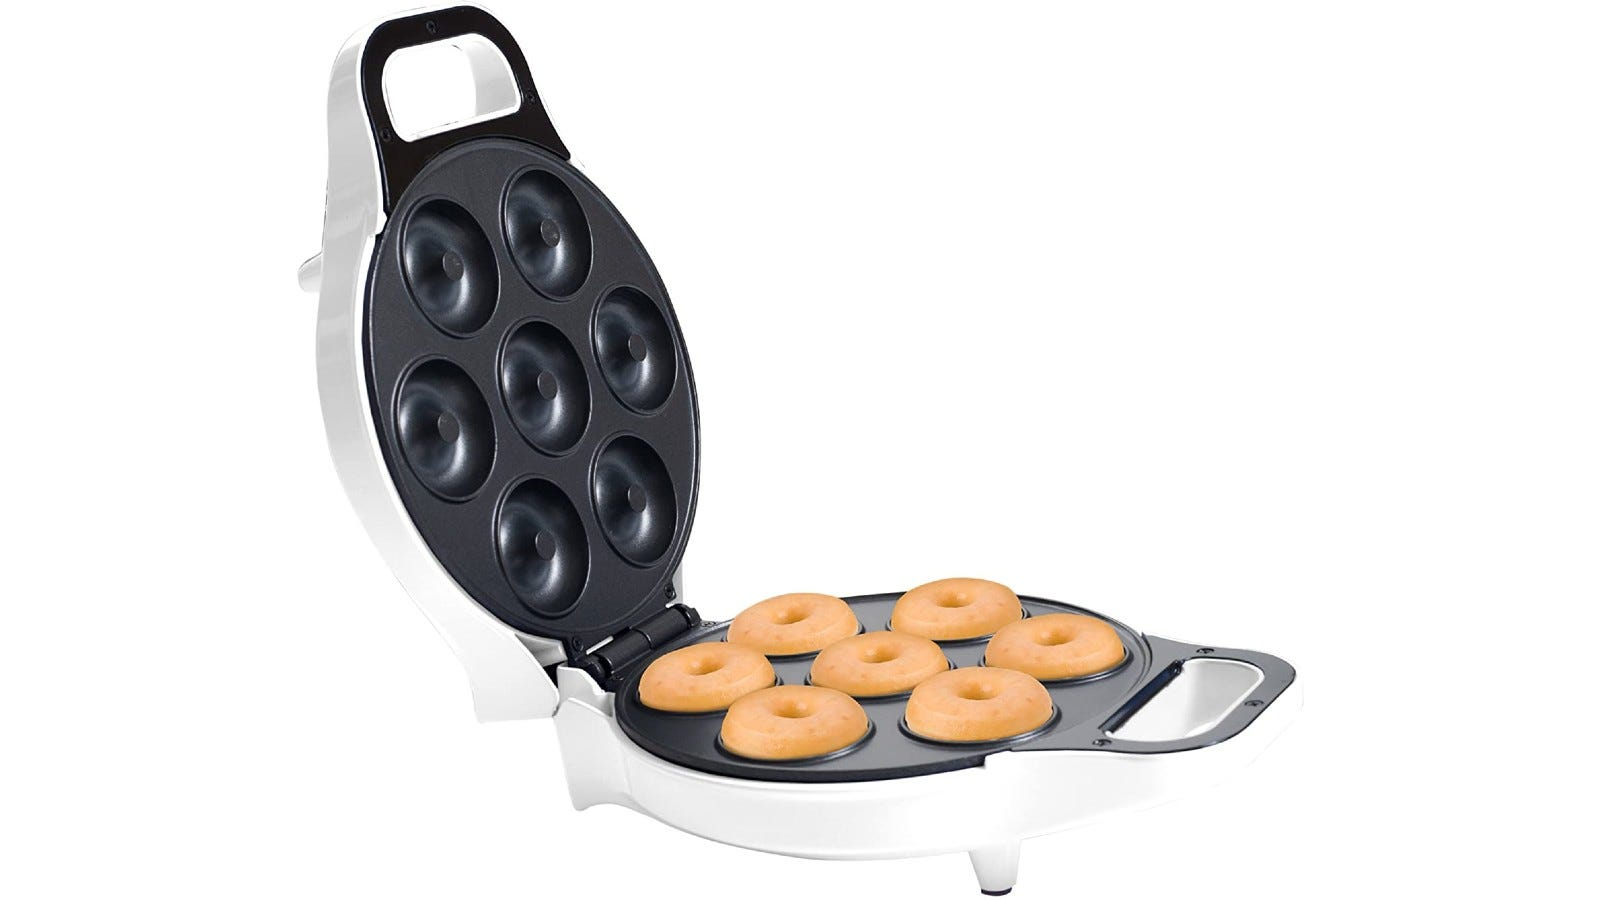 a smaller, round donut aker with seven donuts inside and a handle in the front